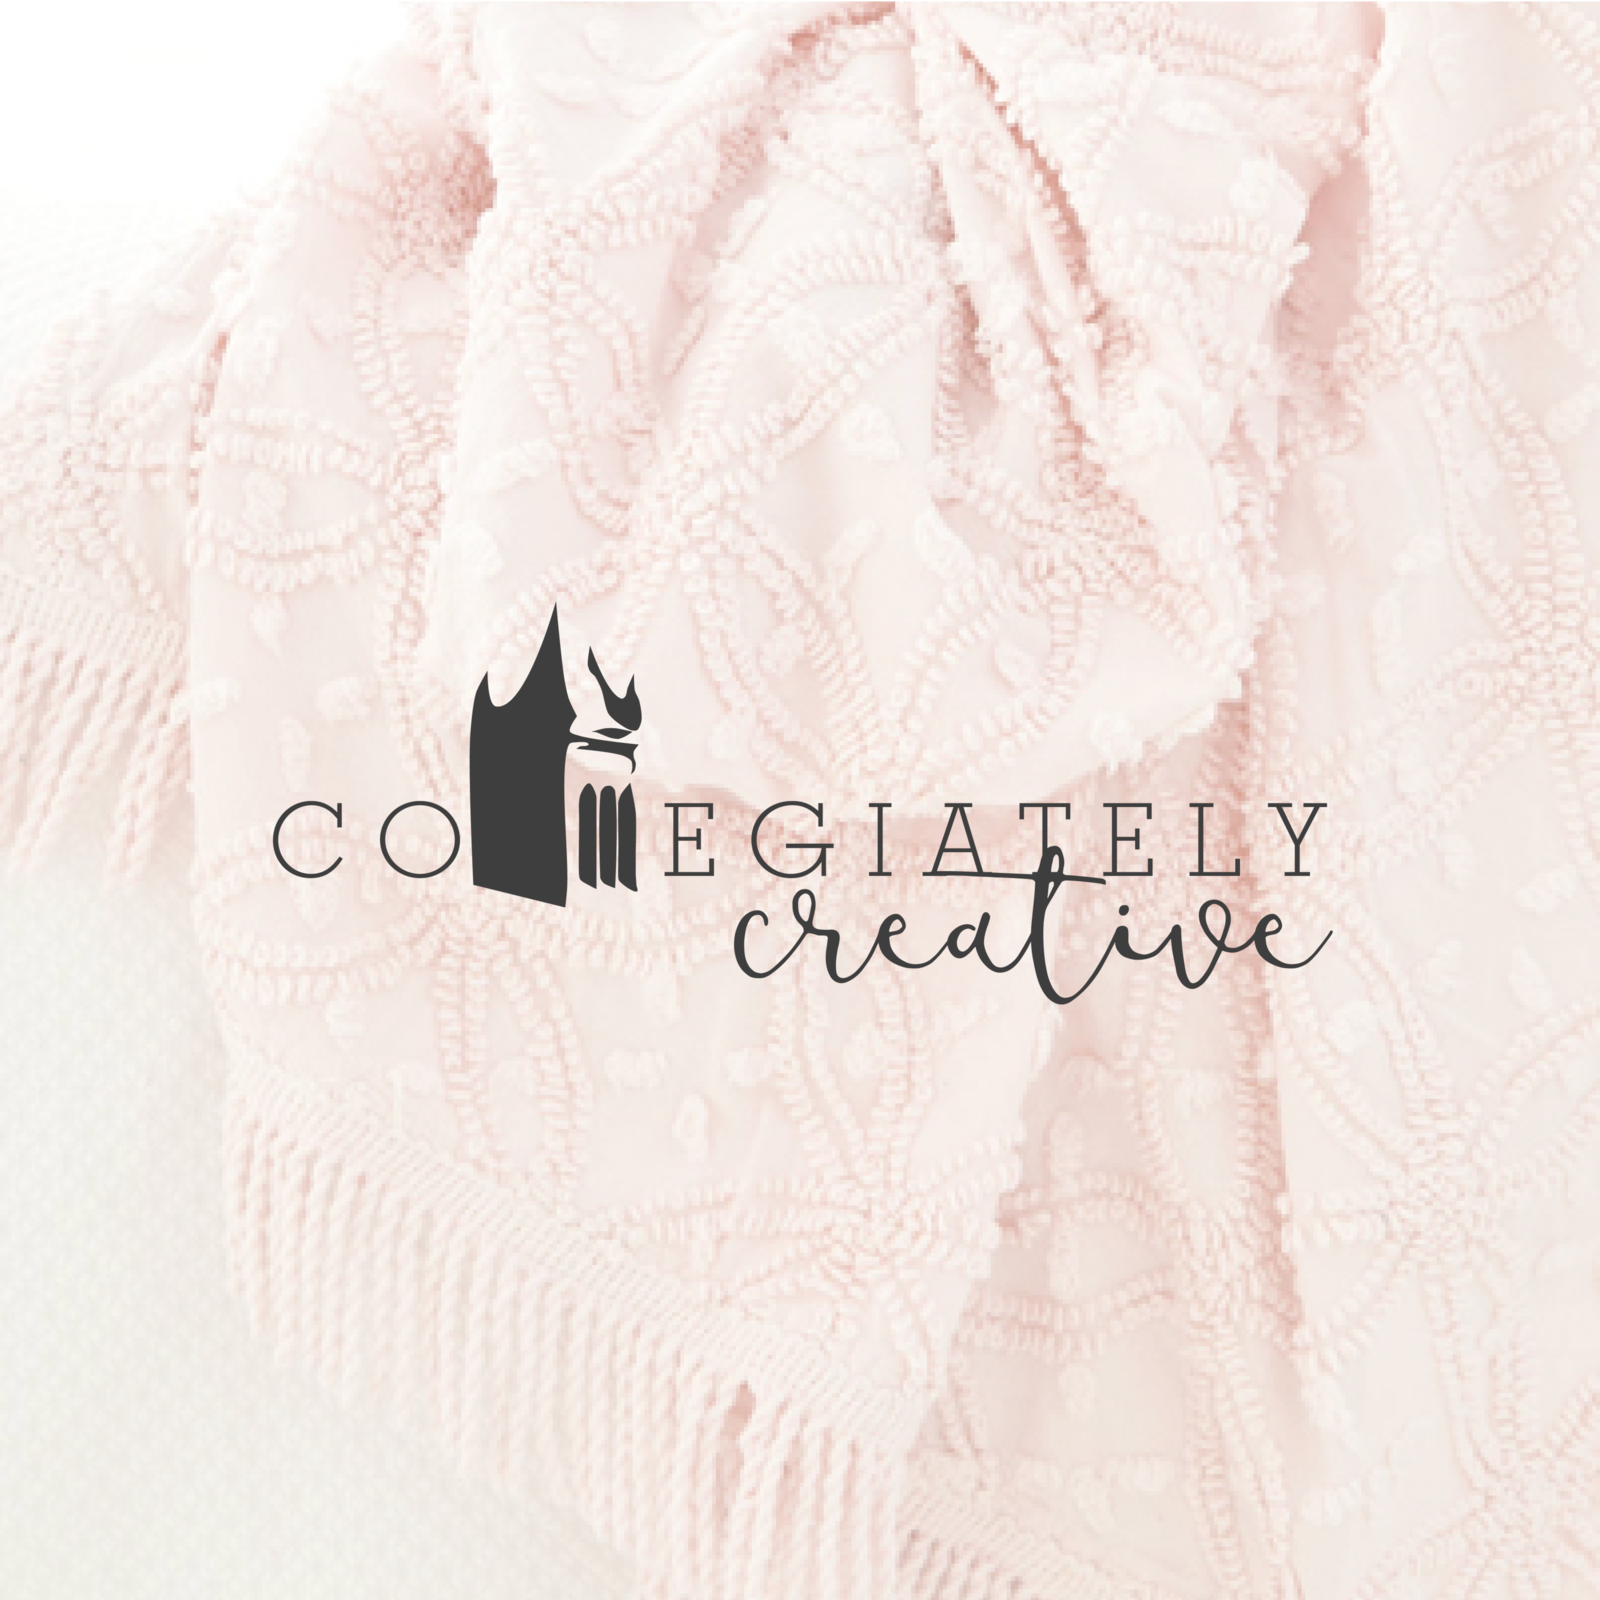 Collegiately Creative